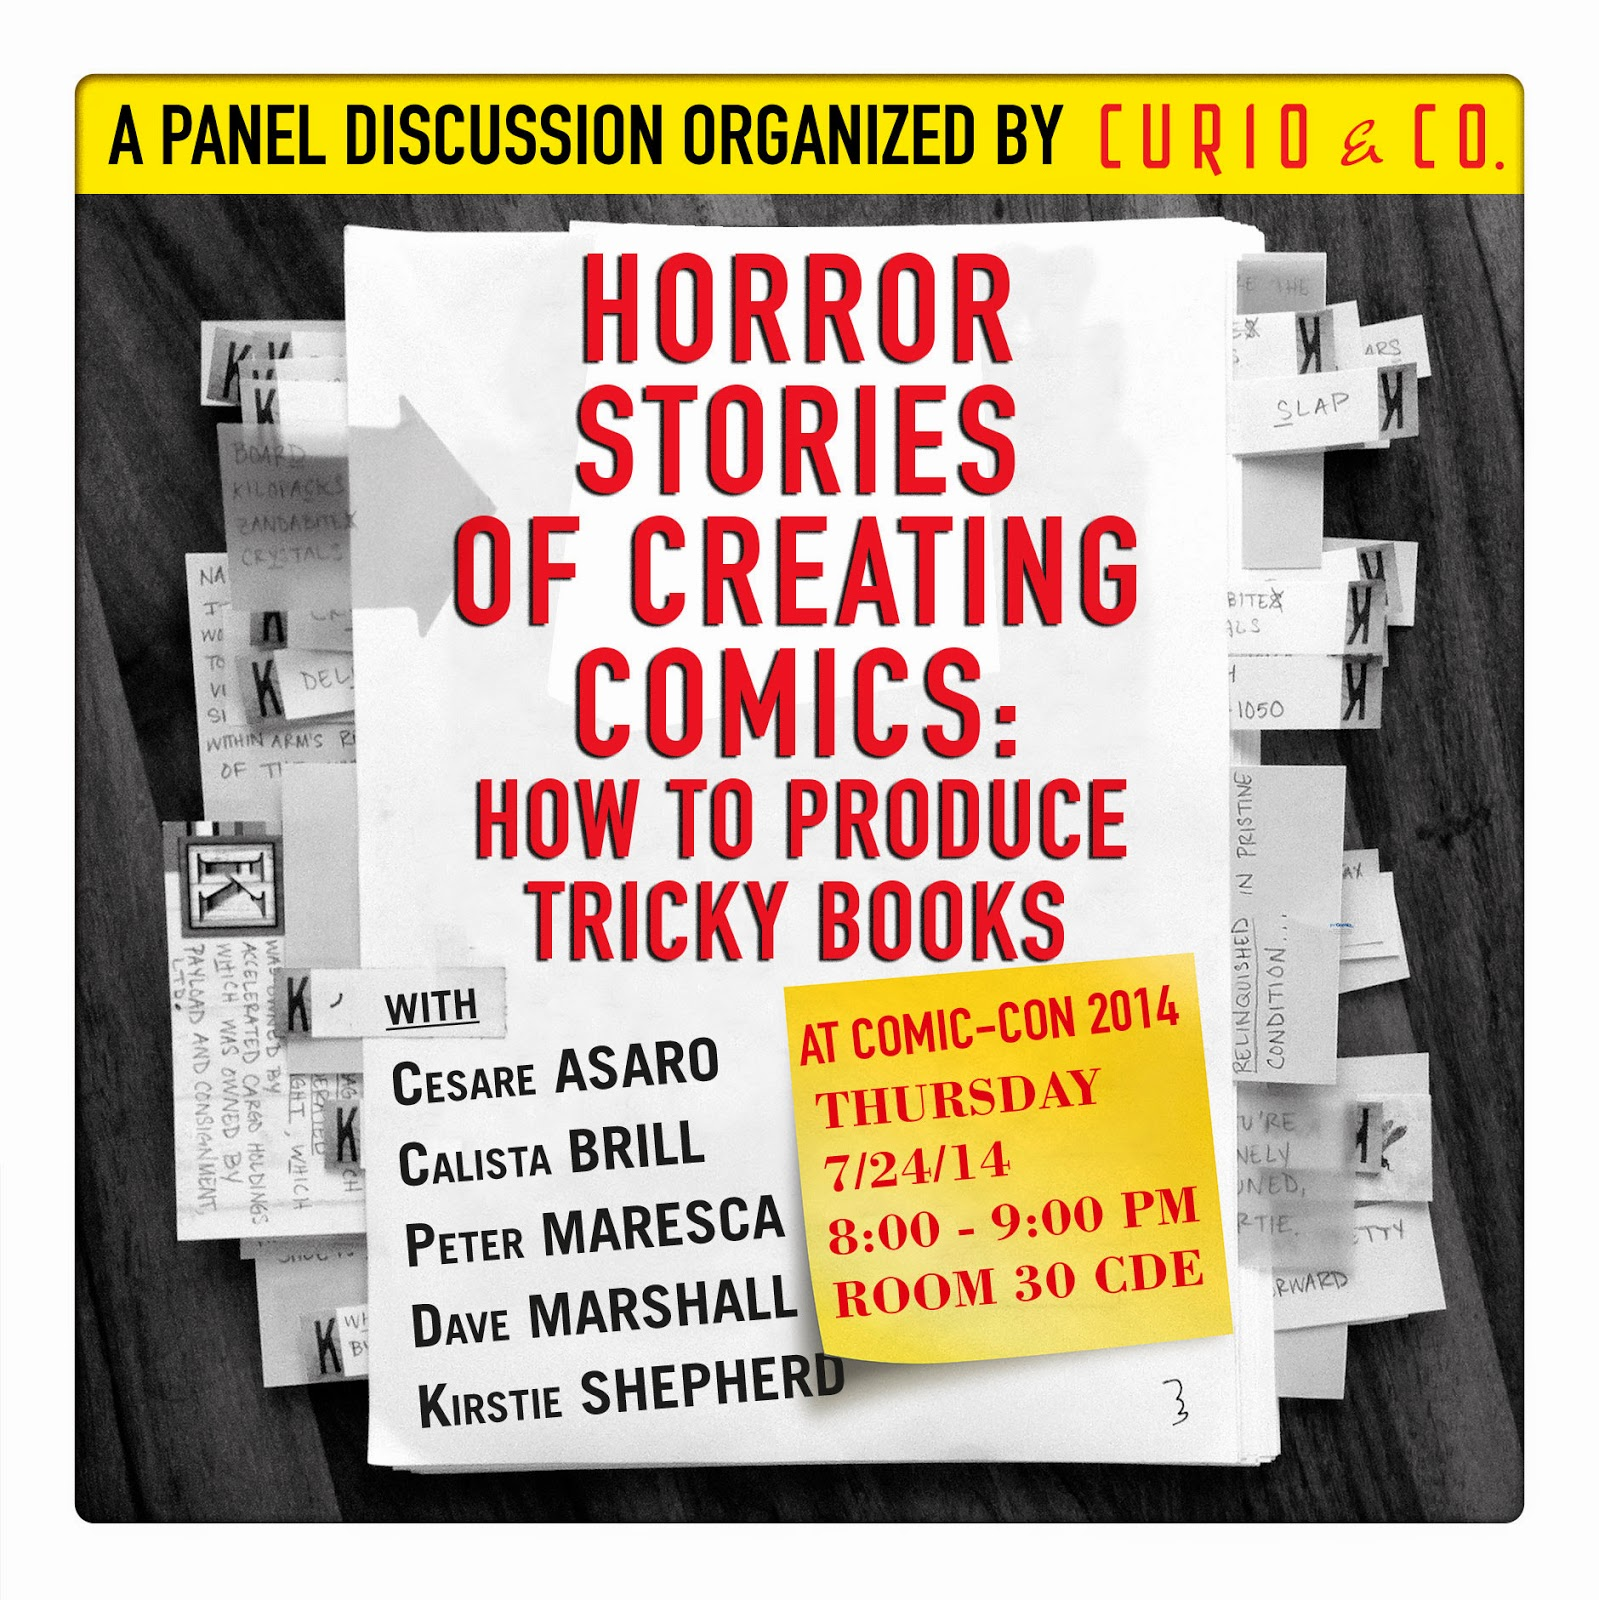 San Diego Comic-Con 1014 Panel Organized by Curio & Co. (Cesare Asaro & Kirstie Shepherd - Curio and Co. OG - www.curioandco.com) - Horror Stories of Creating Comics: How to Produce Tricky Books Thursday, 7/24/14, 8:00p.m. - 9:00p.m. Room: 30CDE - Panelists: Cesare Asaro (Creator, Finding Frank and His Friend, and Creative Director, Curio & Co.), Calista Brill (Senior Editor, First Second Books), Peter Maresca (Editor, Sunday Press Books), Dave Marshall (Editor, Dark Horse Comics) and Kirstie Shepherd (Author, Gadabout Time Machine User's Manual, and Content Director, Curio & Co.)